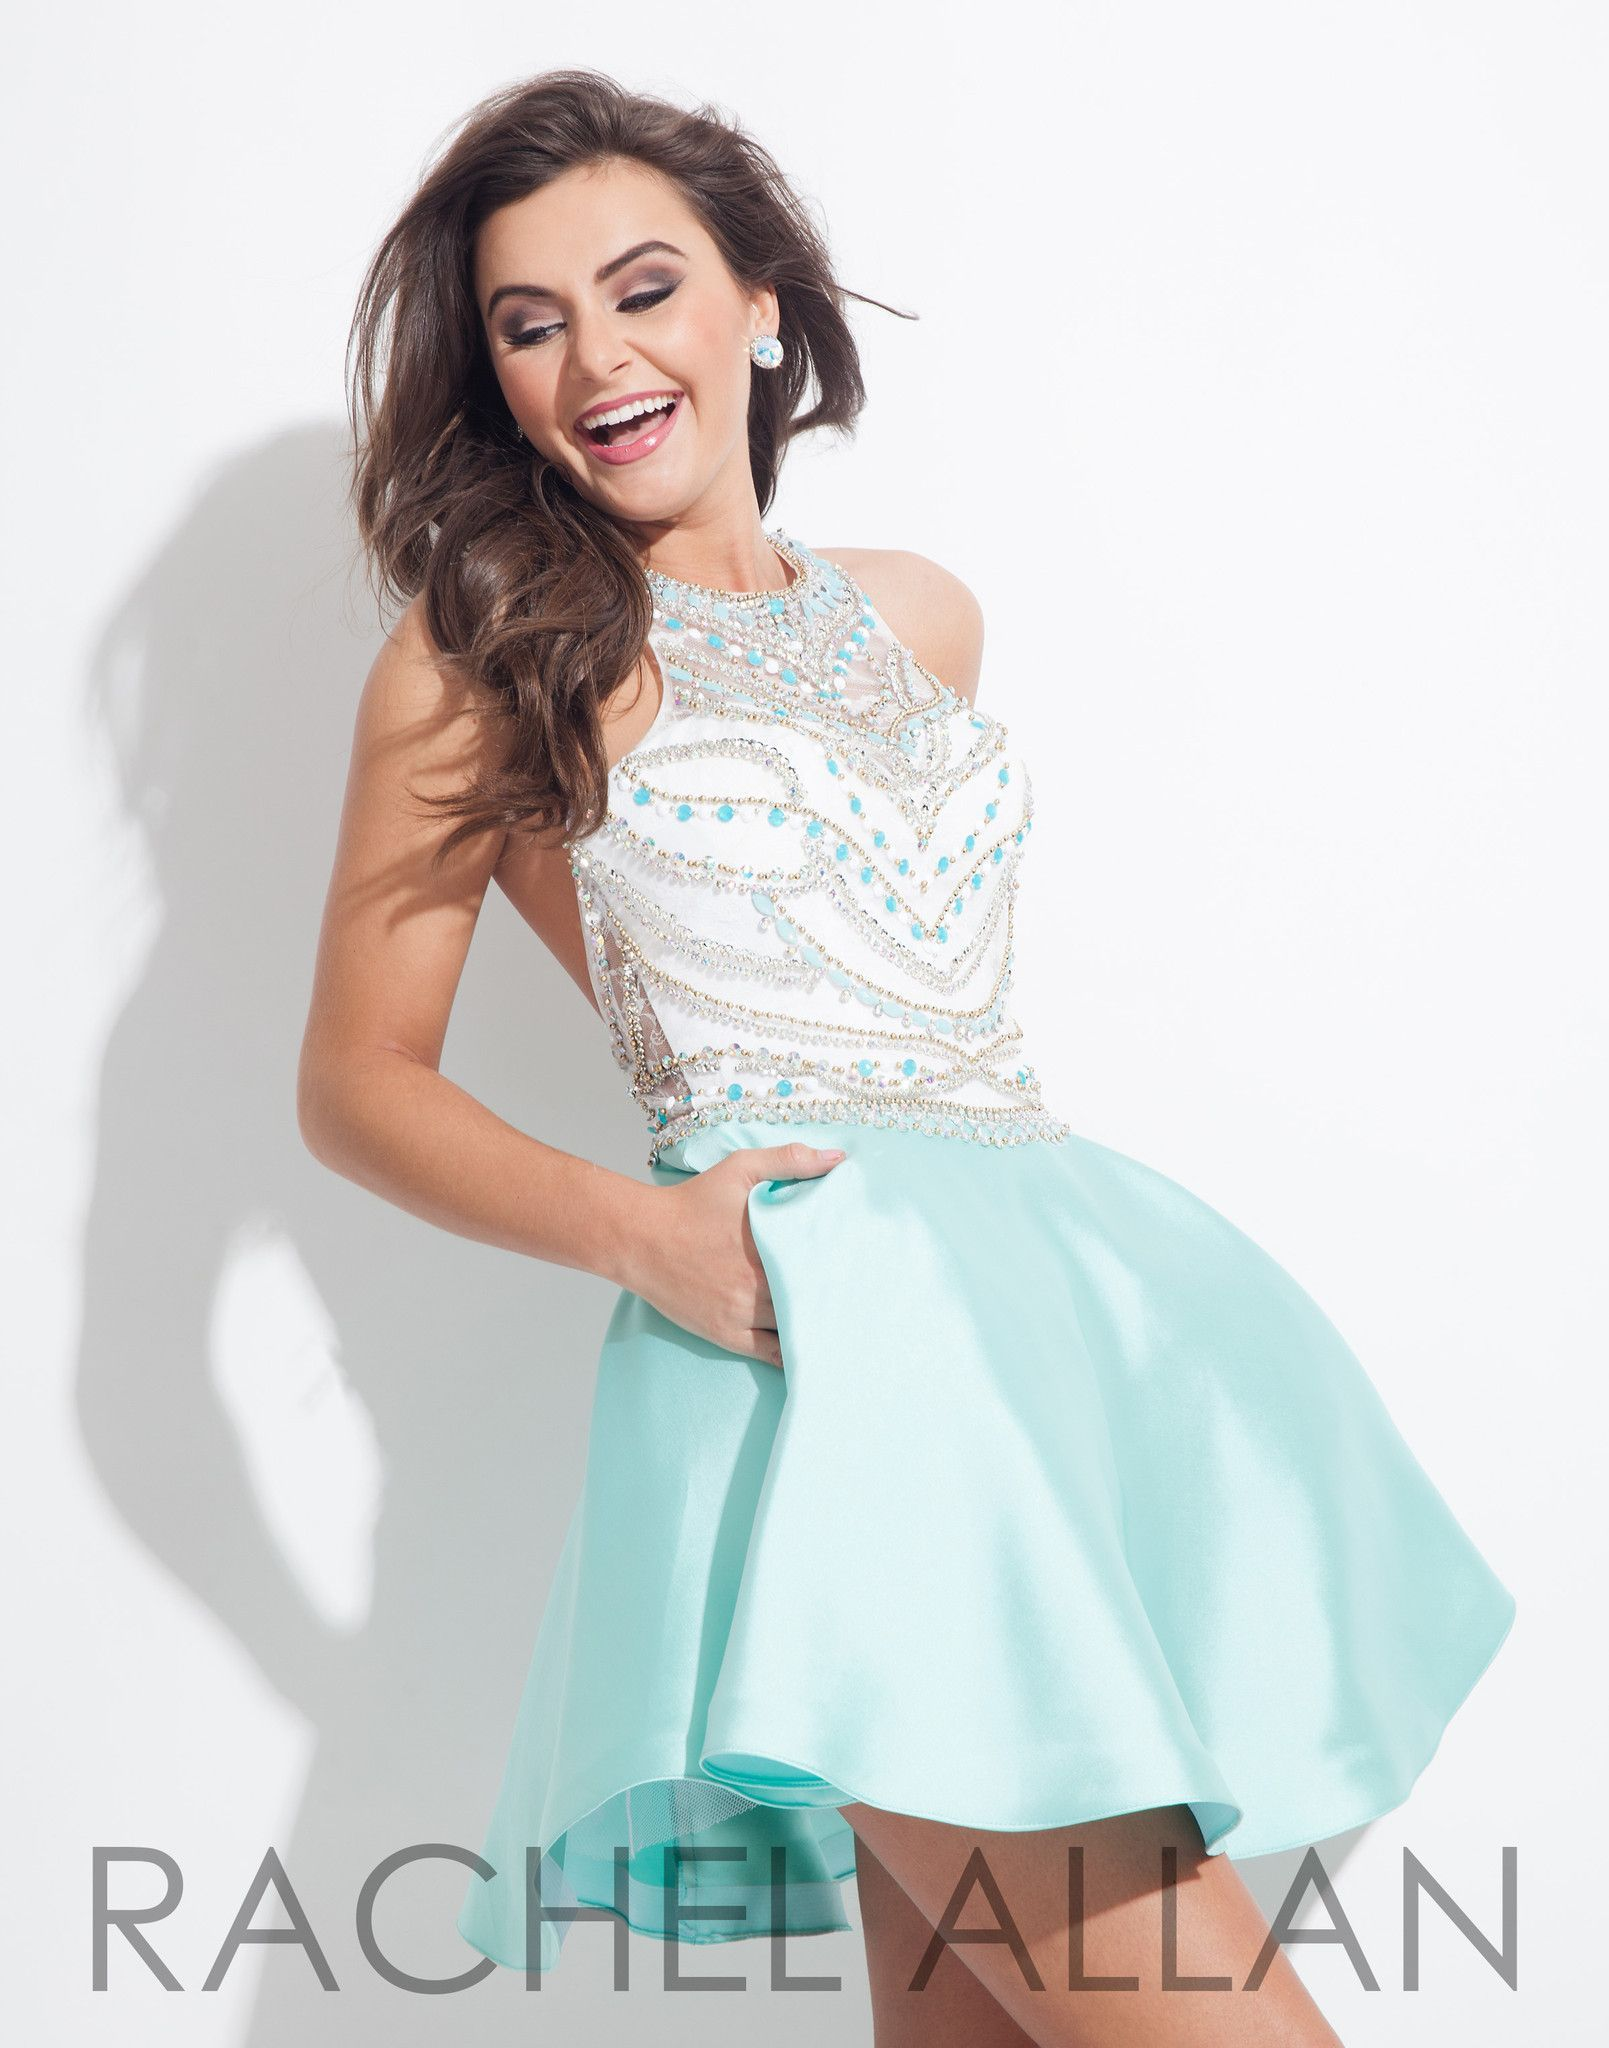 Rachel allan mint homecoming dress homecoming pinterest